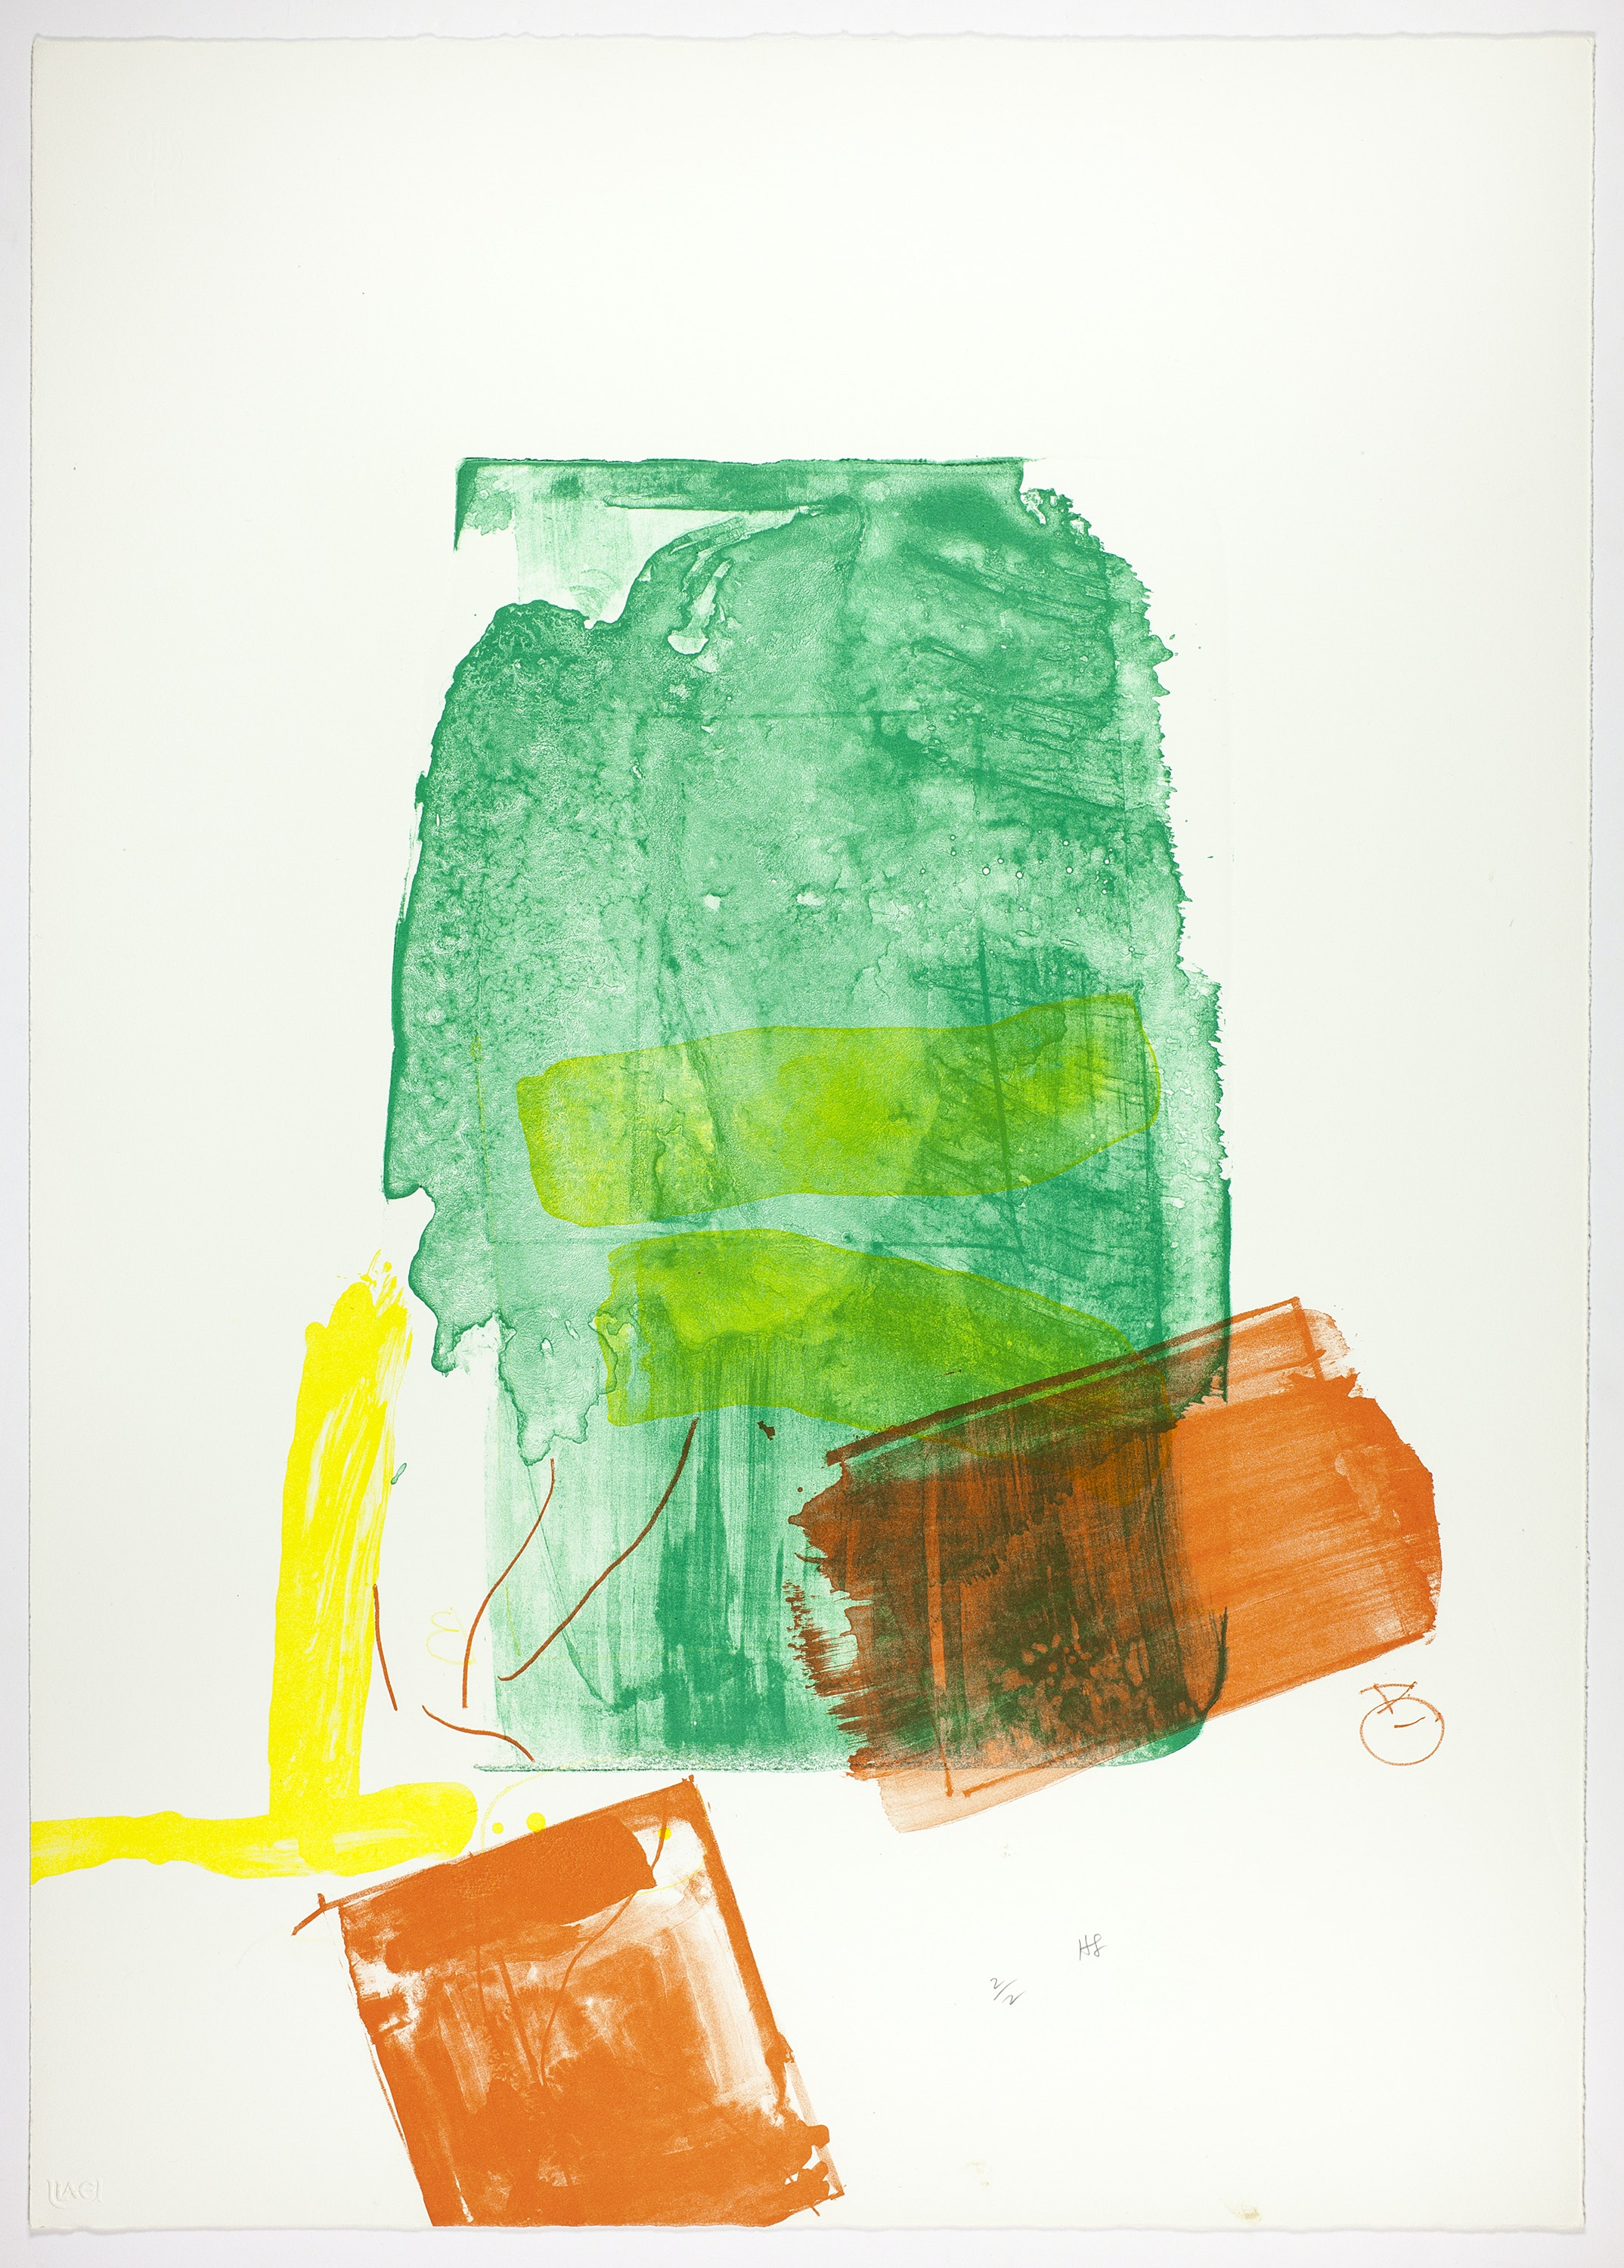 A print with large swaths of green, orange, and yellow overlapping on a white sheet of paper.